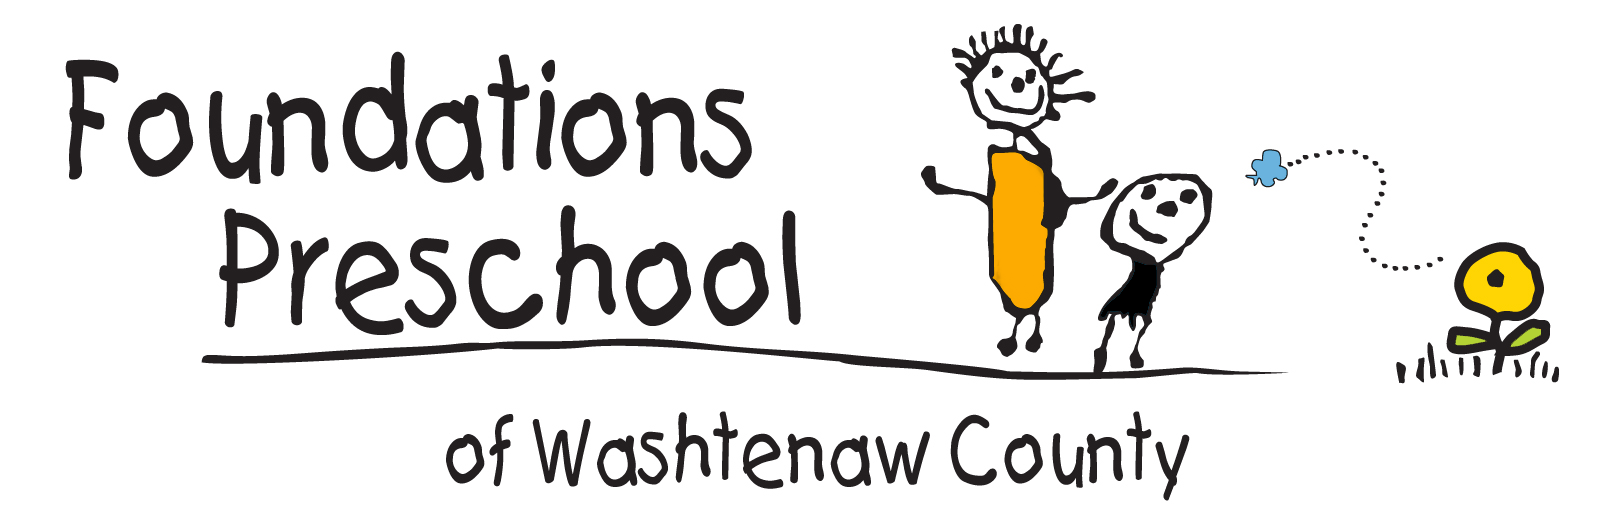 Foundations Preschool logo